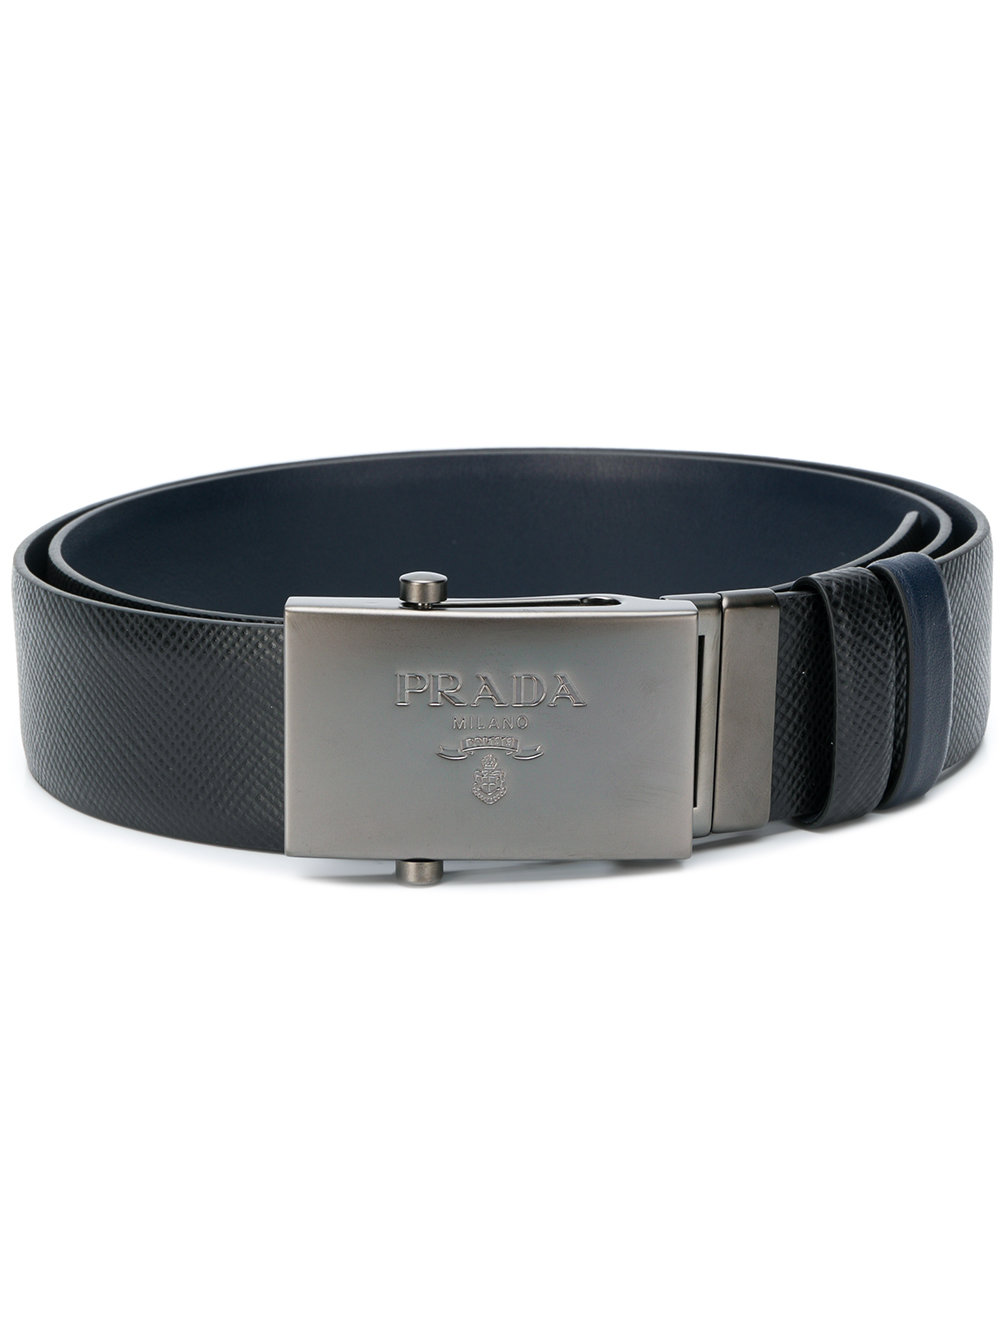 Prada logo plaque buckle belt - Black - Glami.sk 44799f55aa7